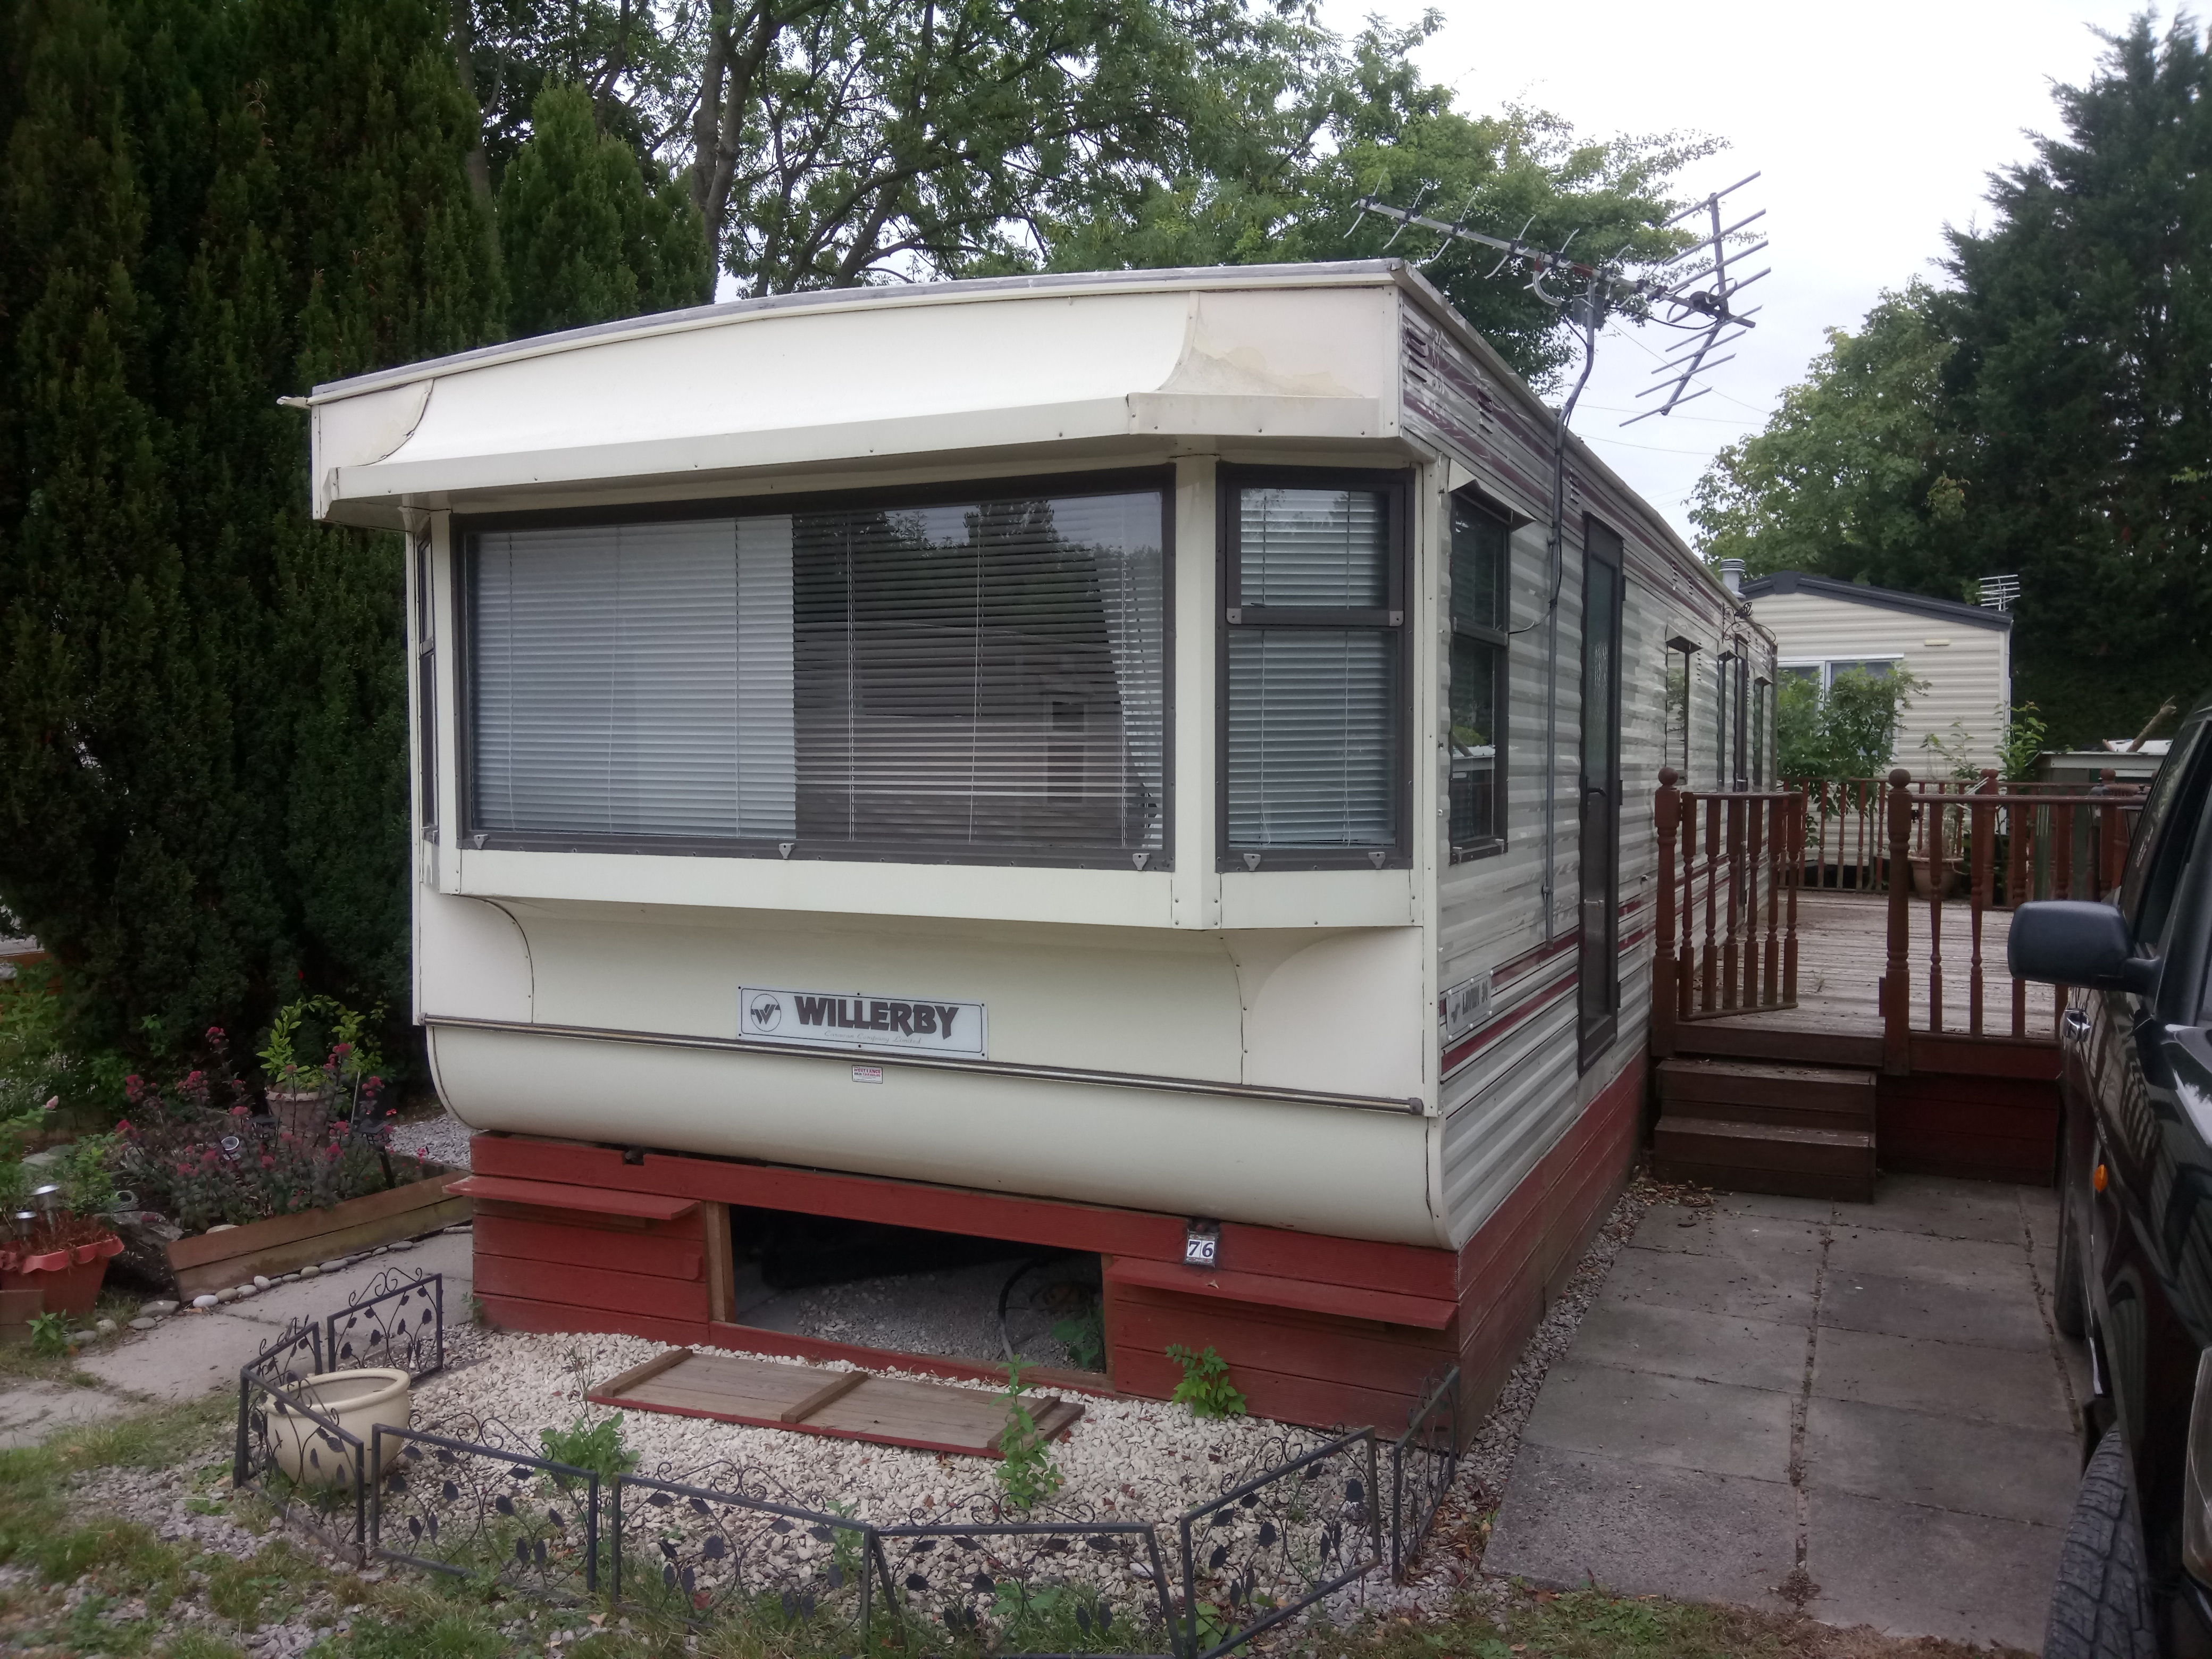 Static Caravan Willerby 10 by 34 Foot Two Bedroom Offsite Sale Only